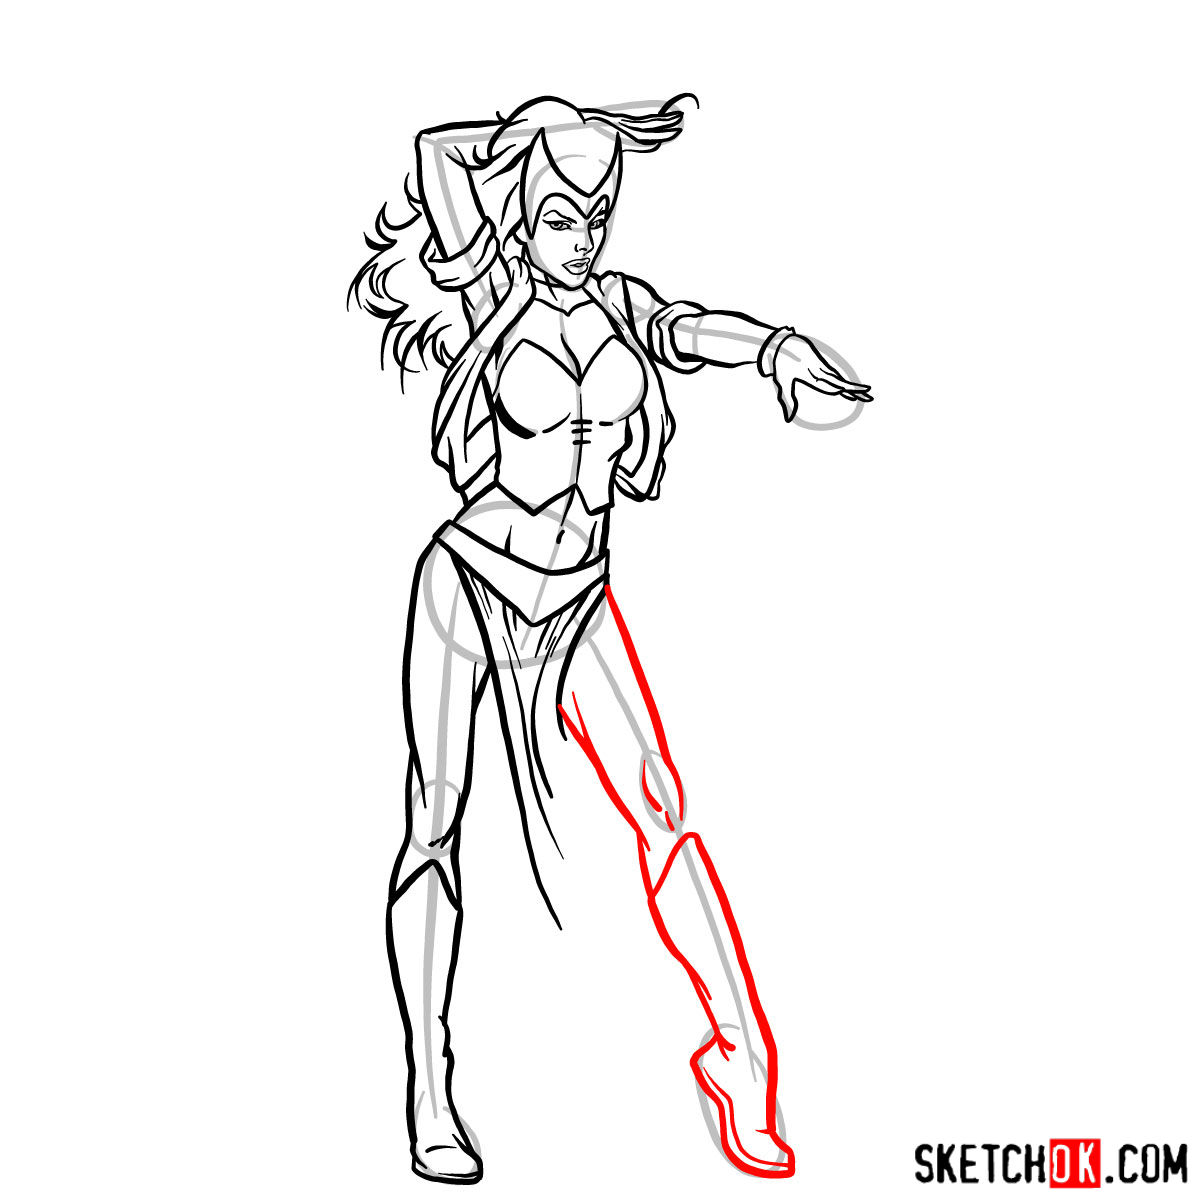 How to draw Scarlet Witch from Marvel Comics - step 12